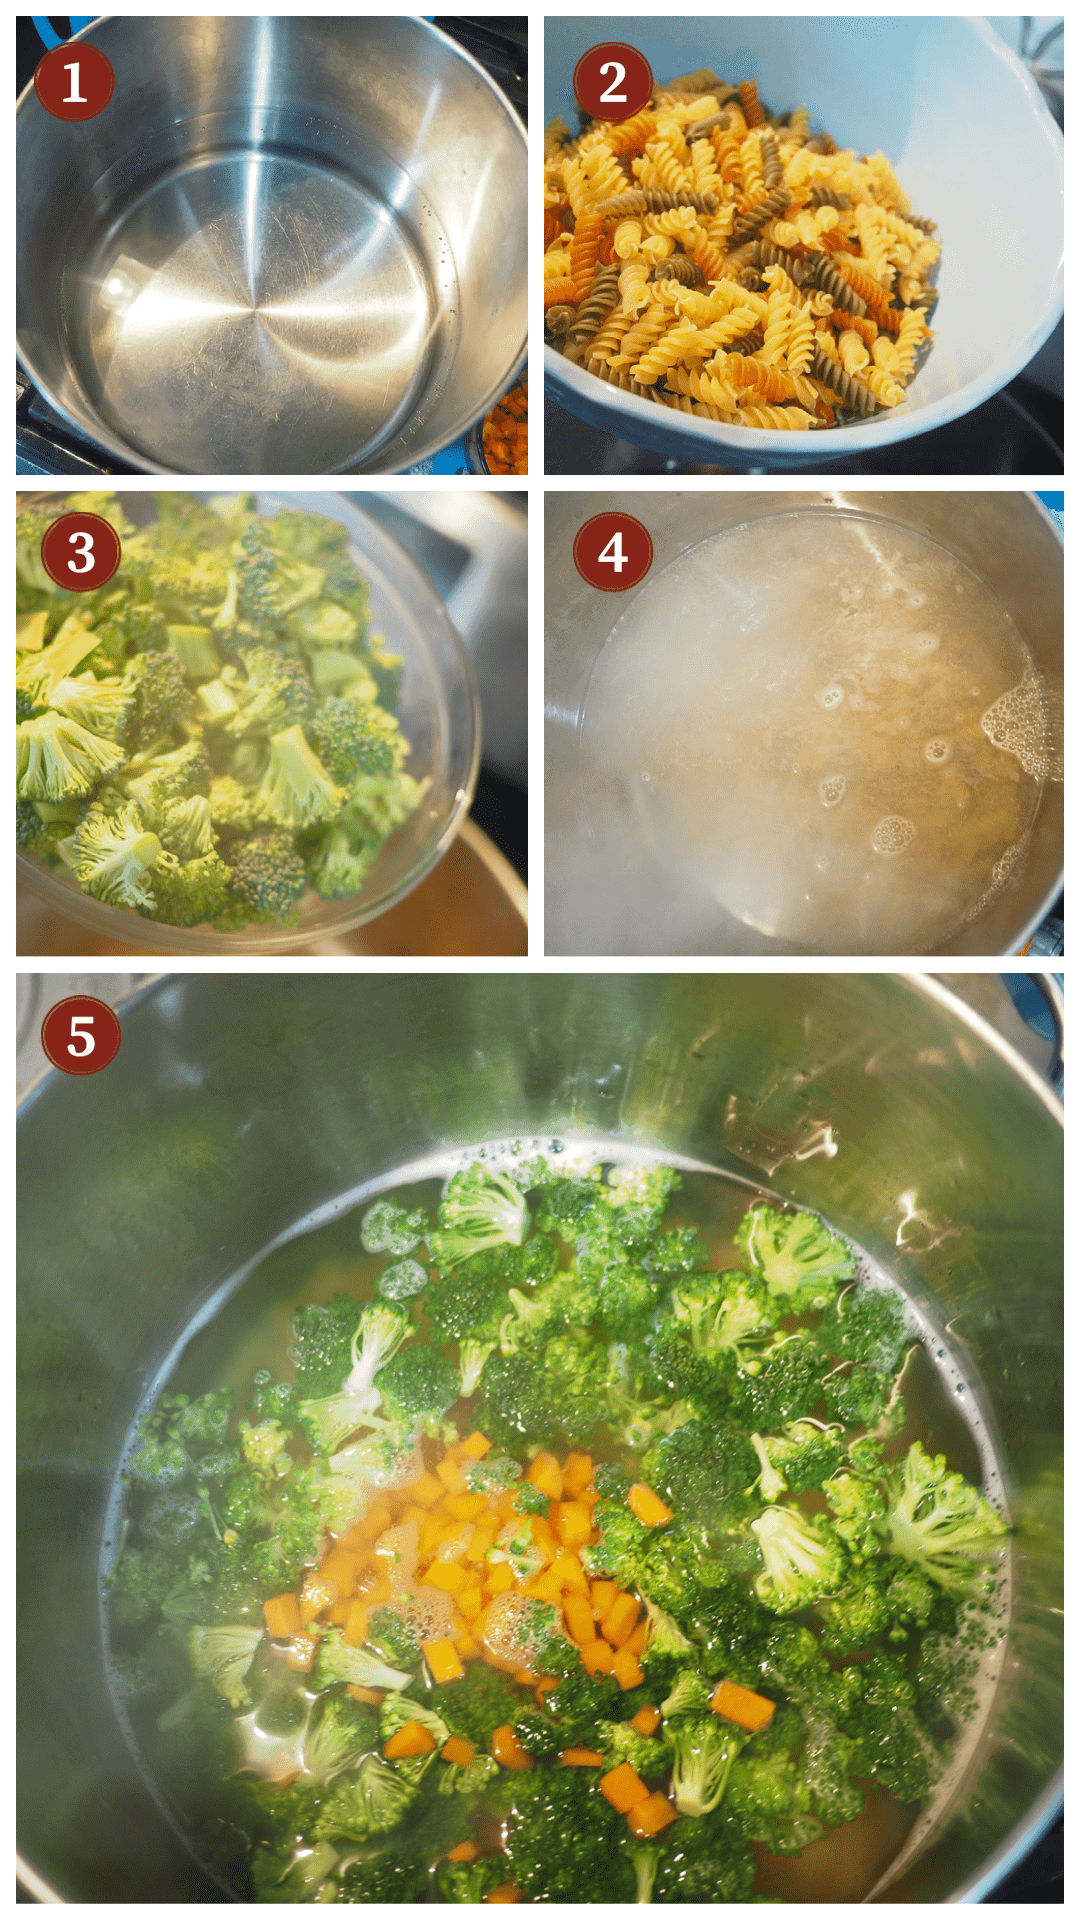 A collage of images showing hot to make pasta salad, steps 1 - 5.